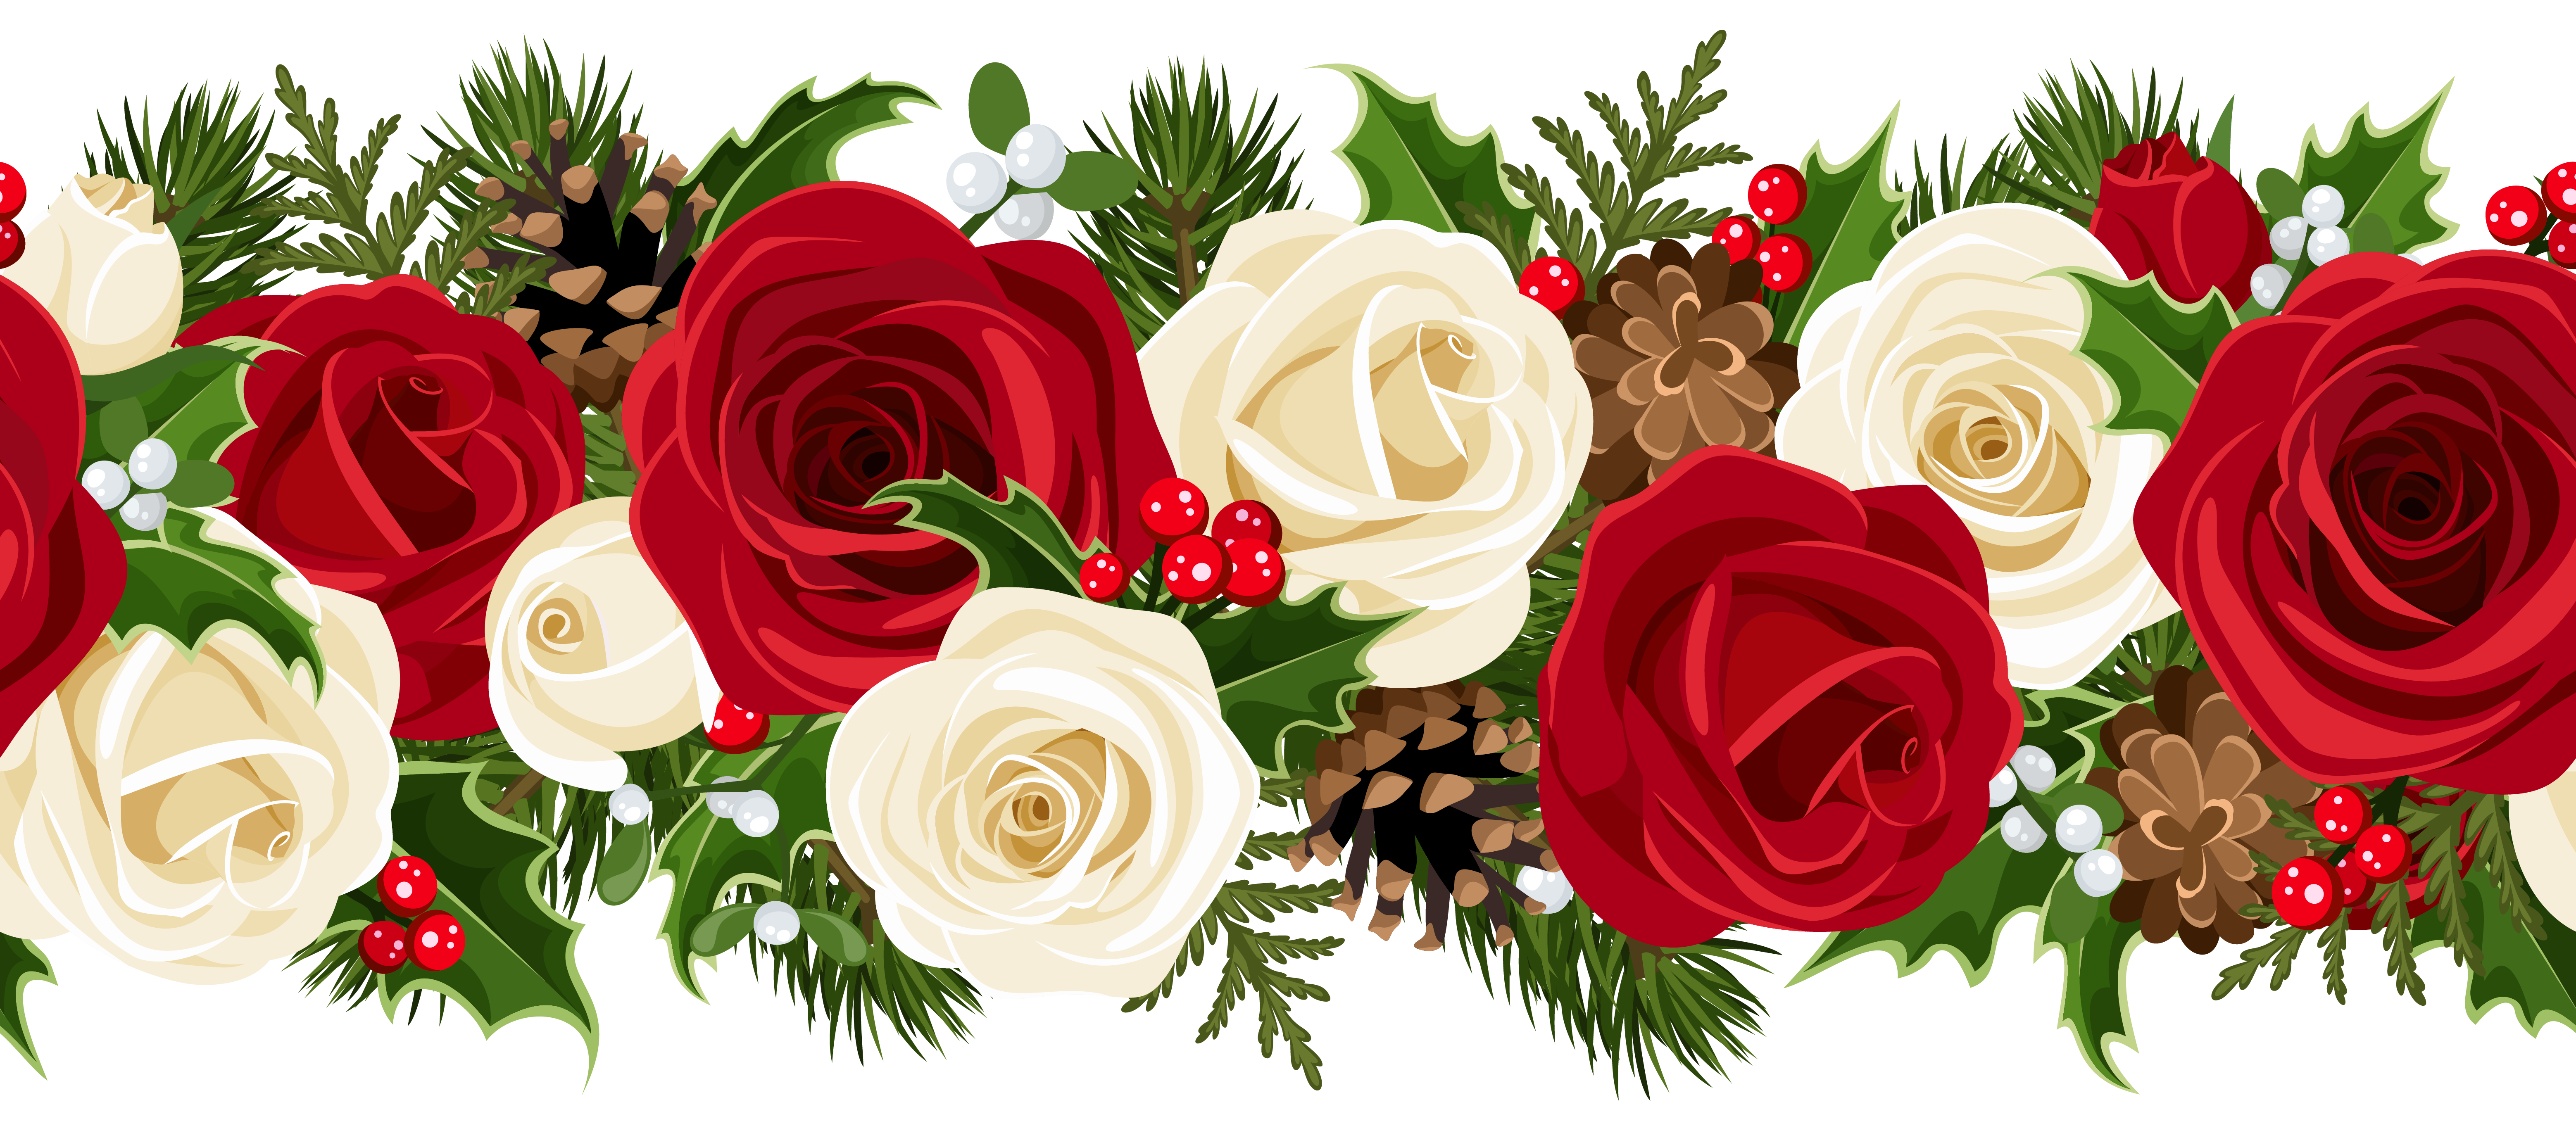 Christmas rose clip art. Flower garland png